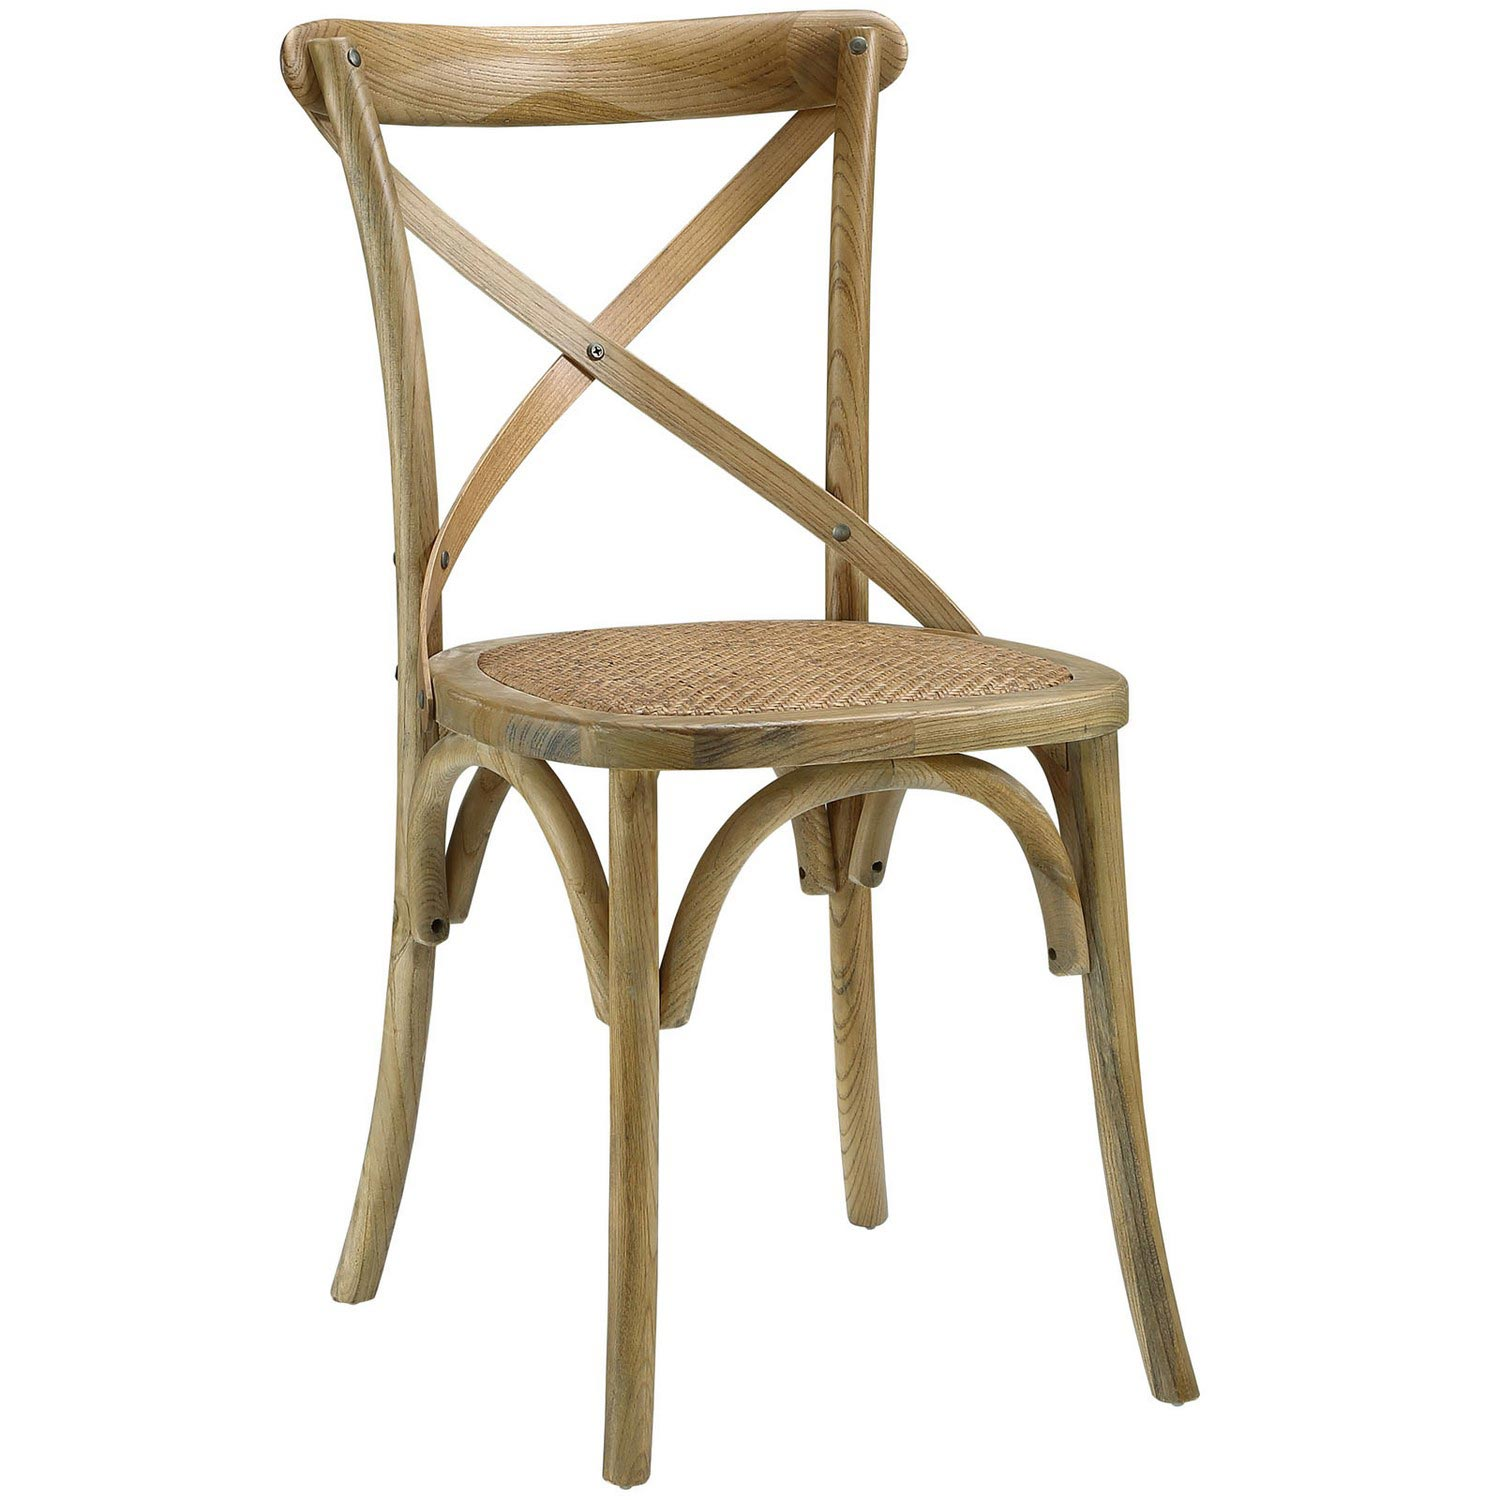 Modway Gear Dining Side Chair - Natural